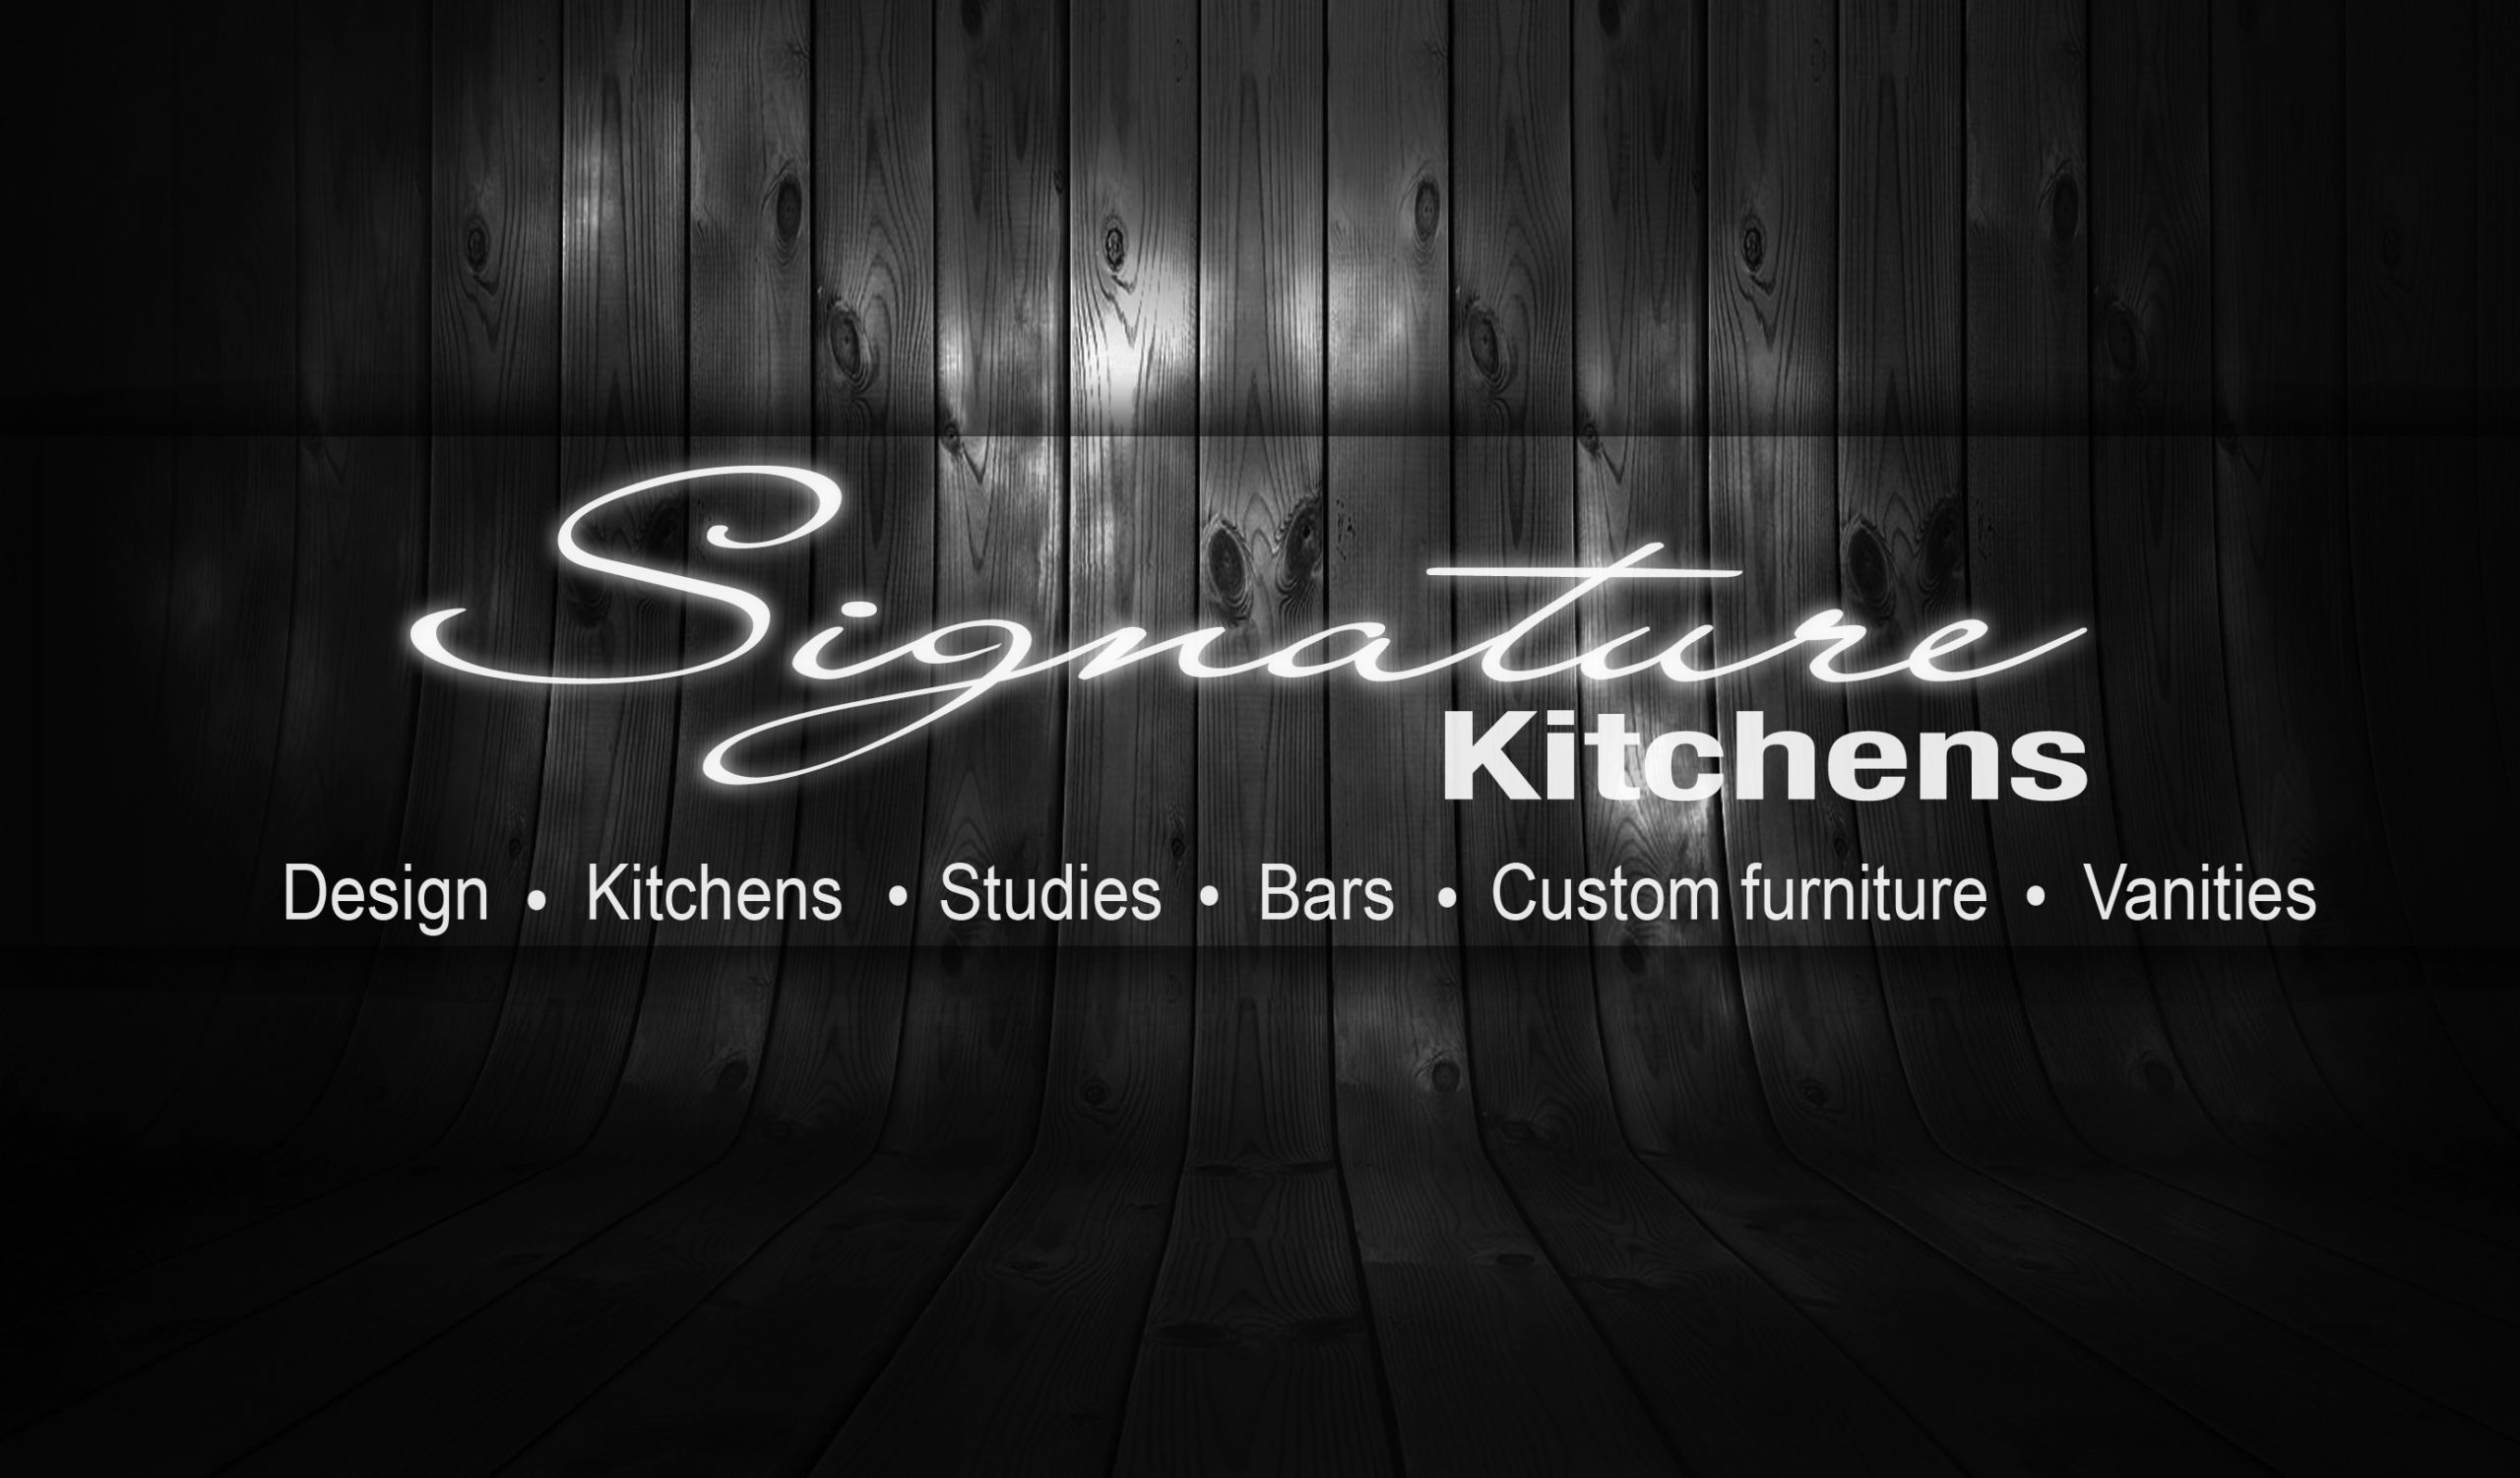 Signature Kitchens (Pty) Ltd